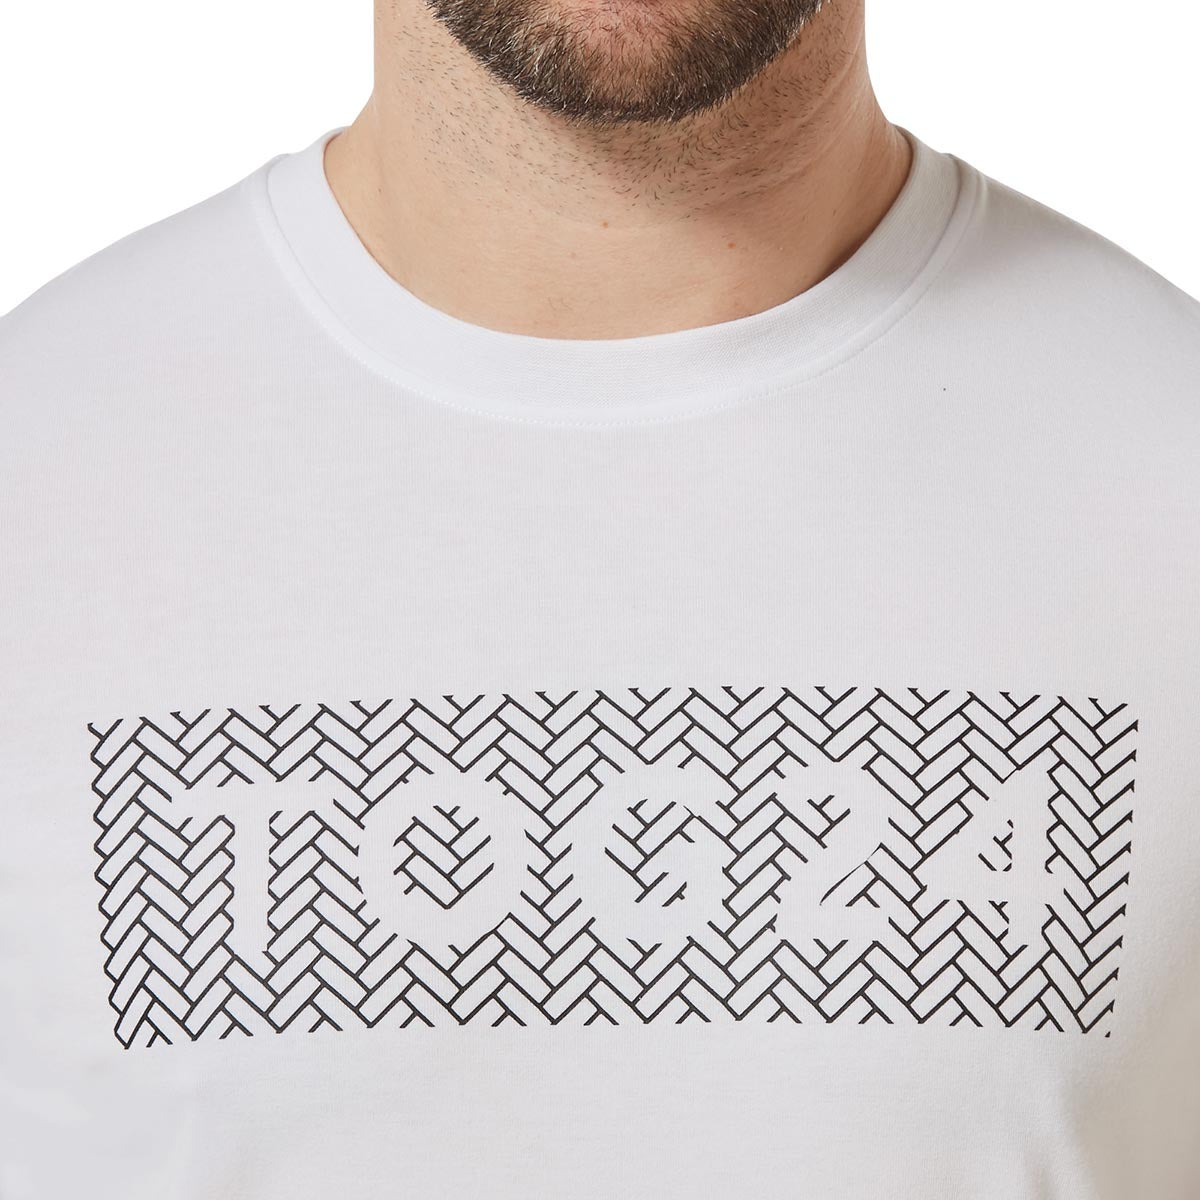 Towler Mens Performance Graphic T-Shirt - Optic White image 4